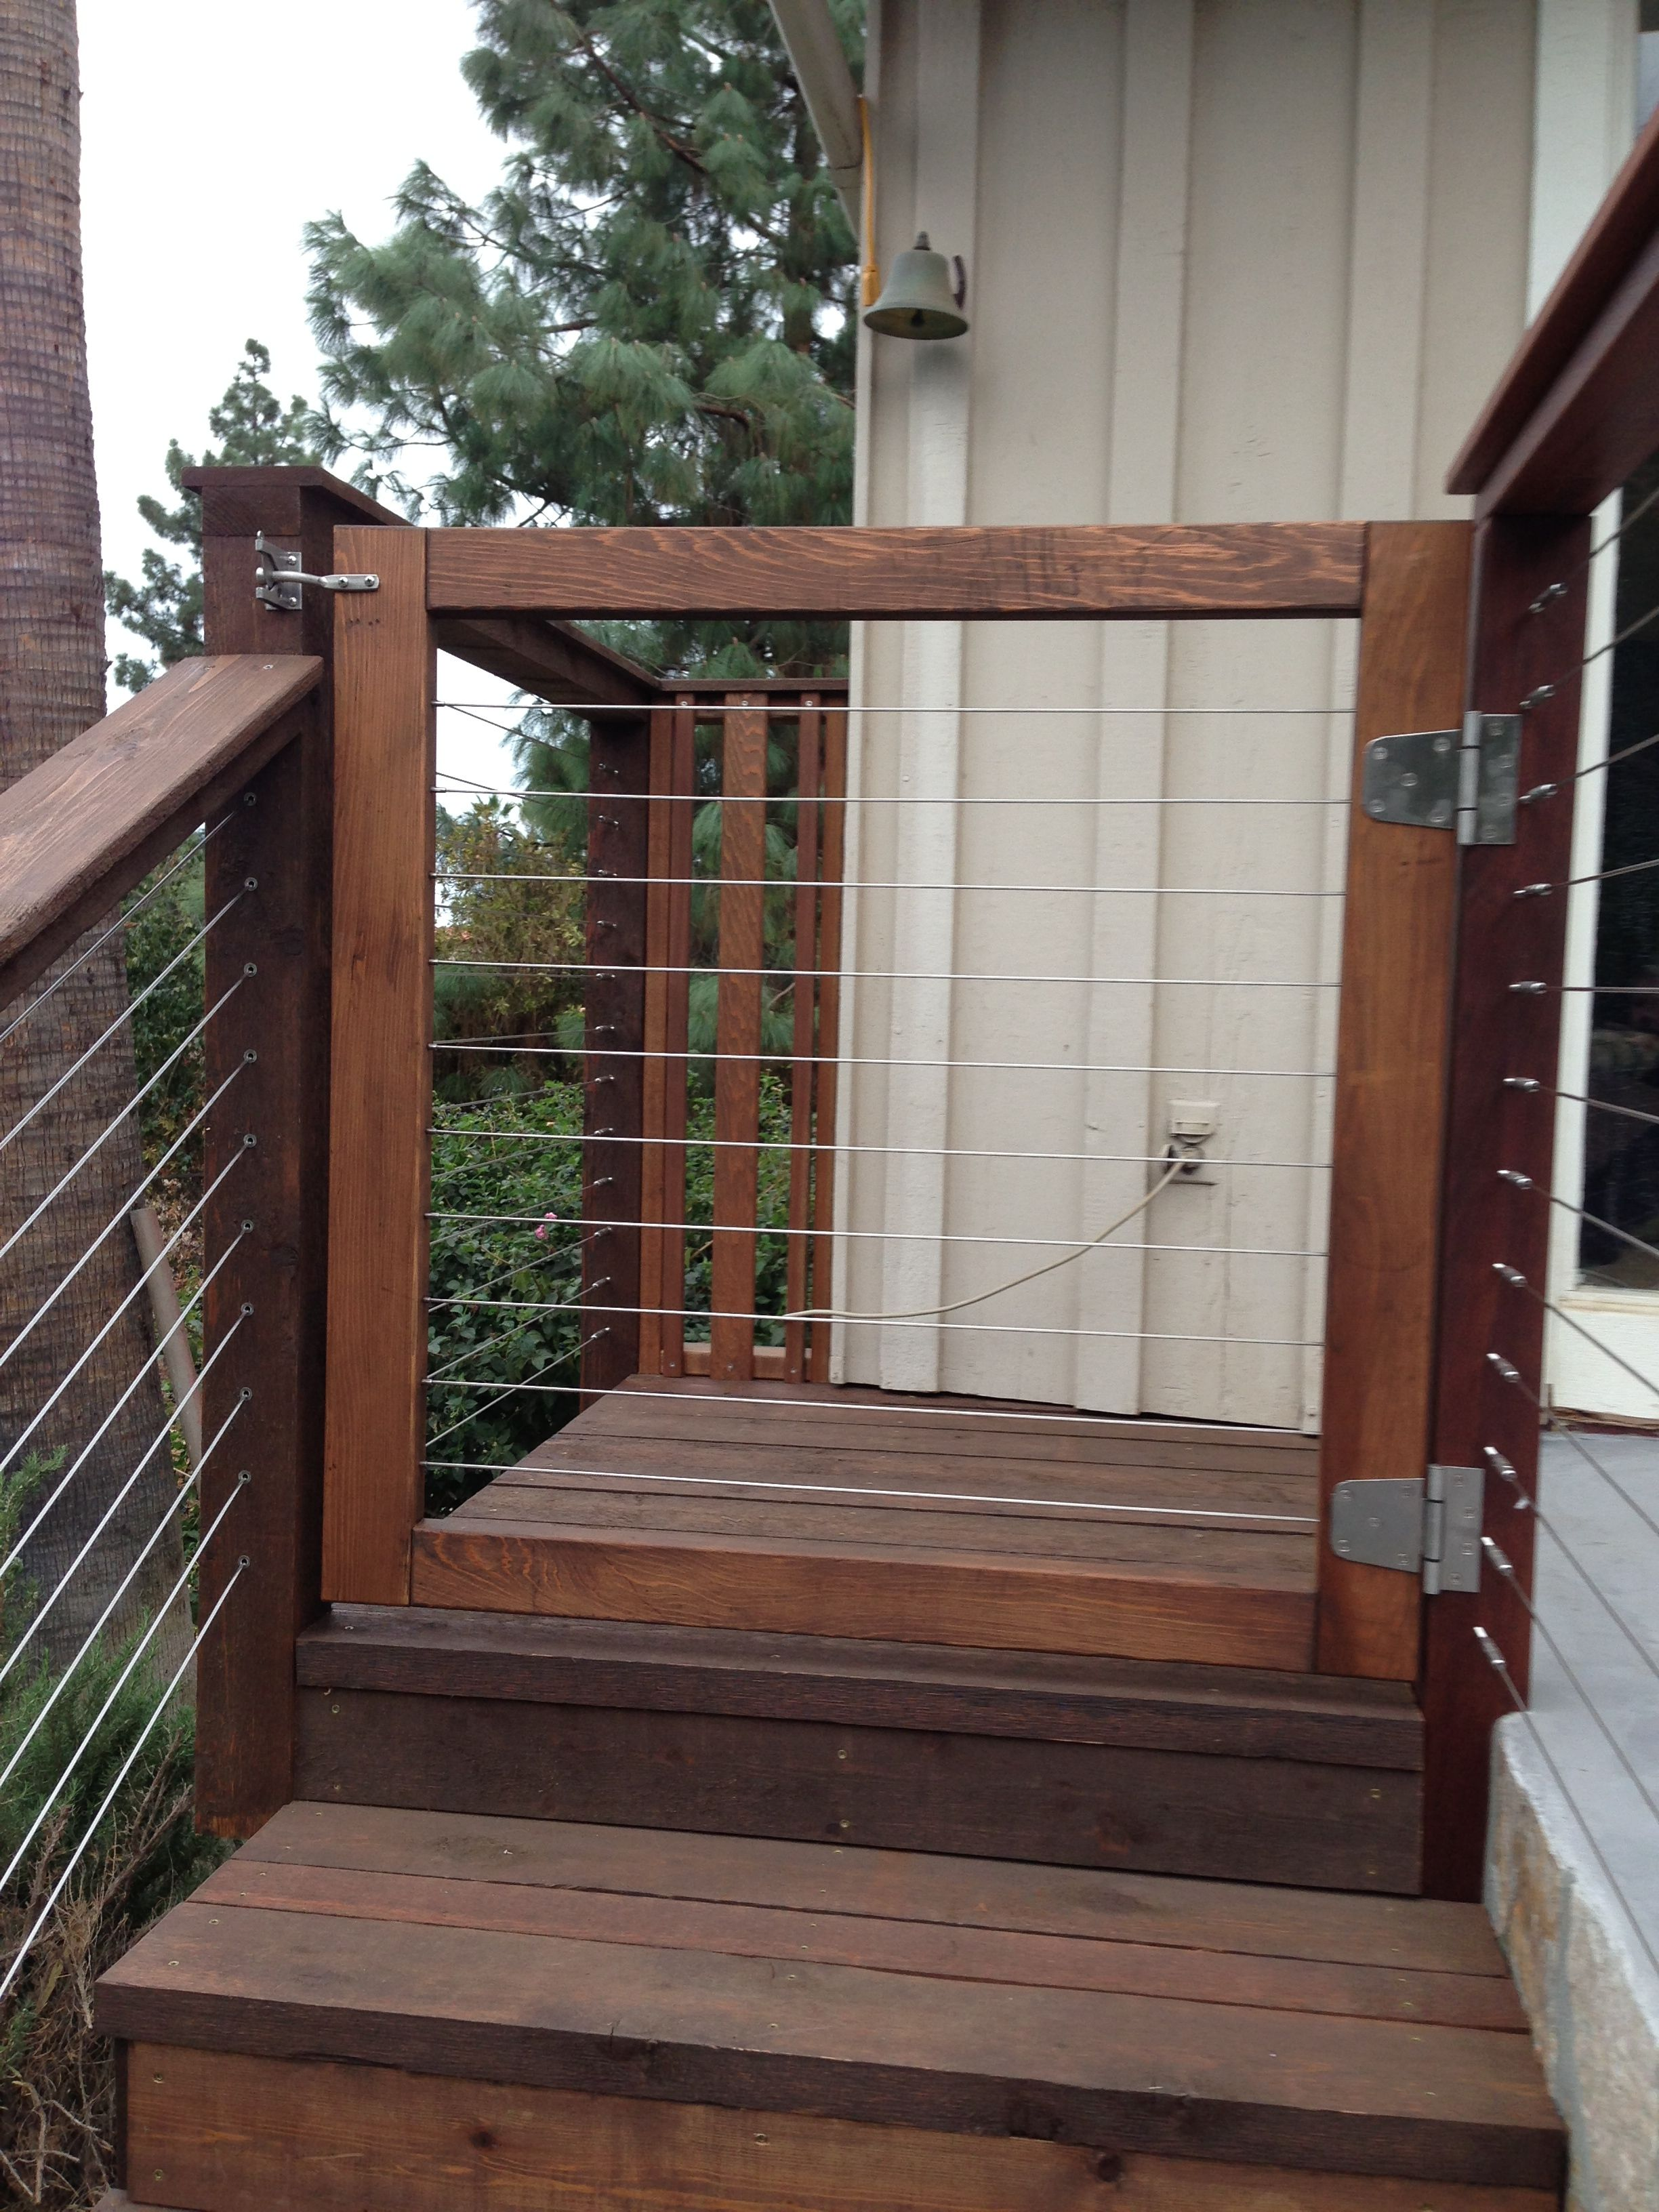 Stainless Steel Cable Gates Outdoor Living Pinte